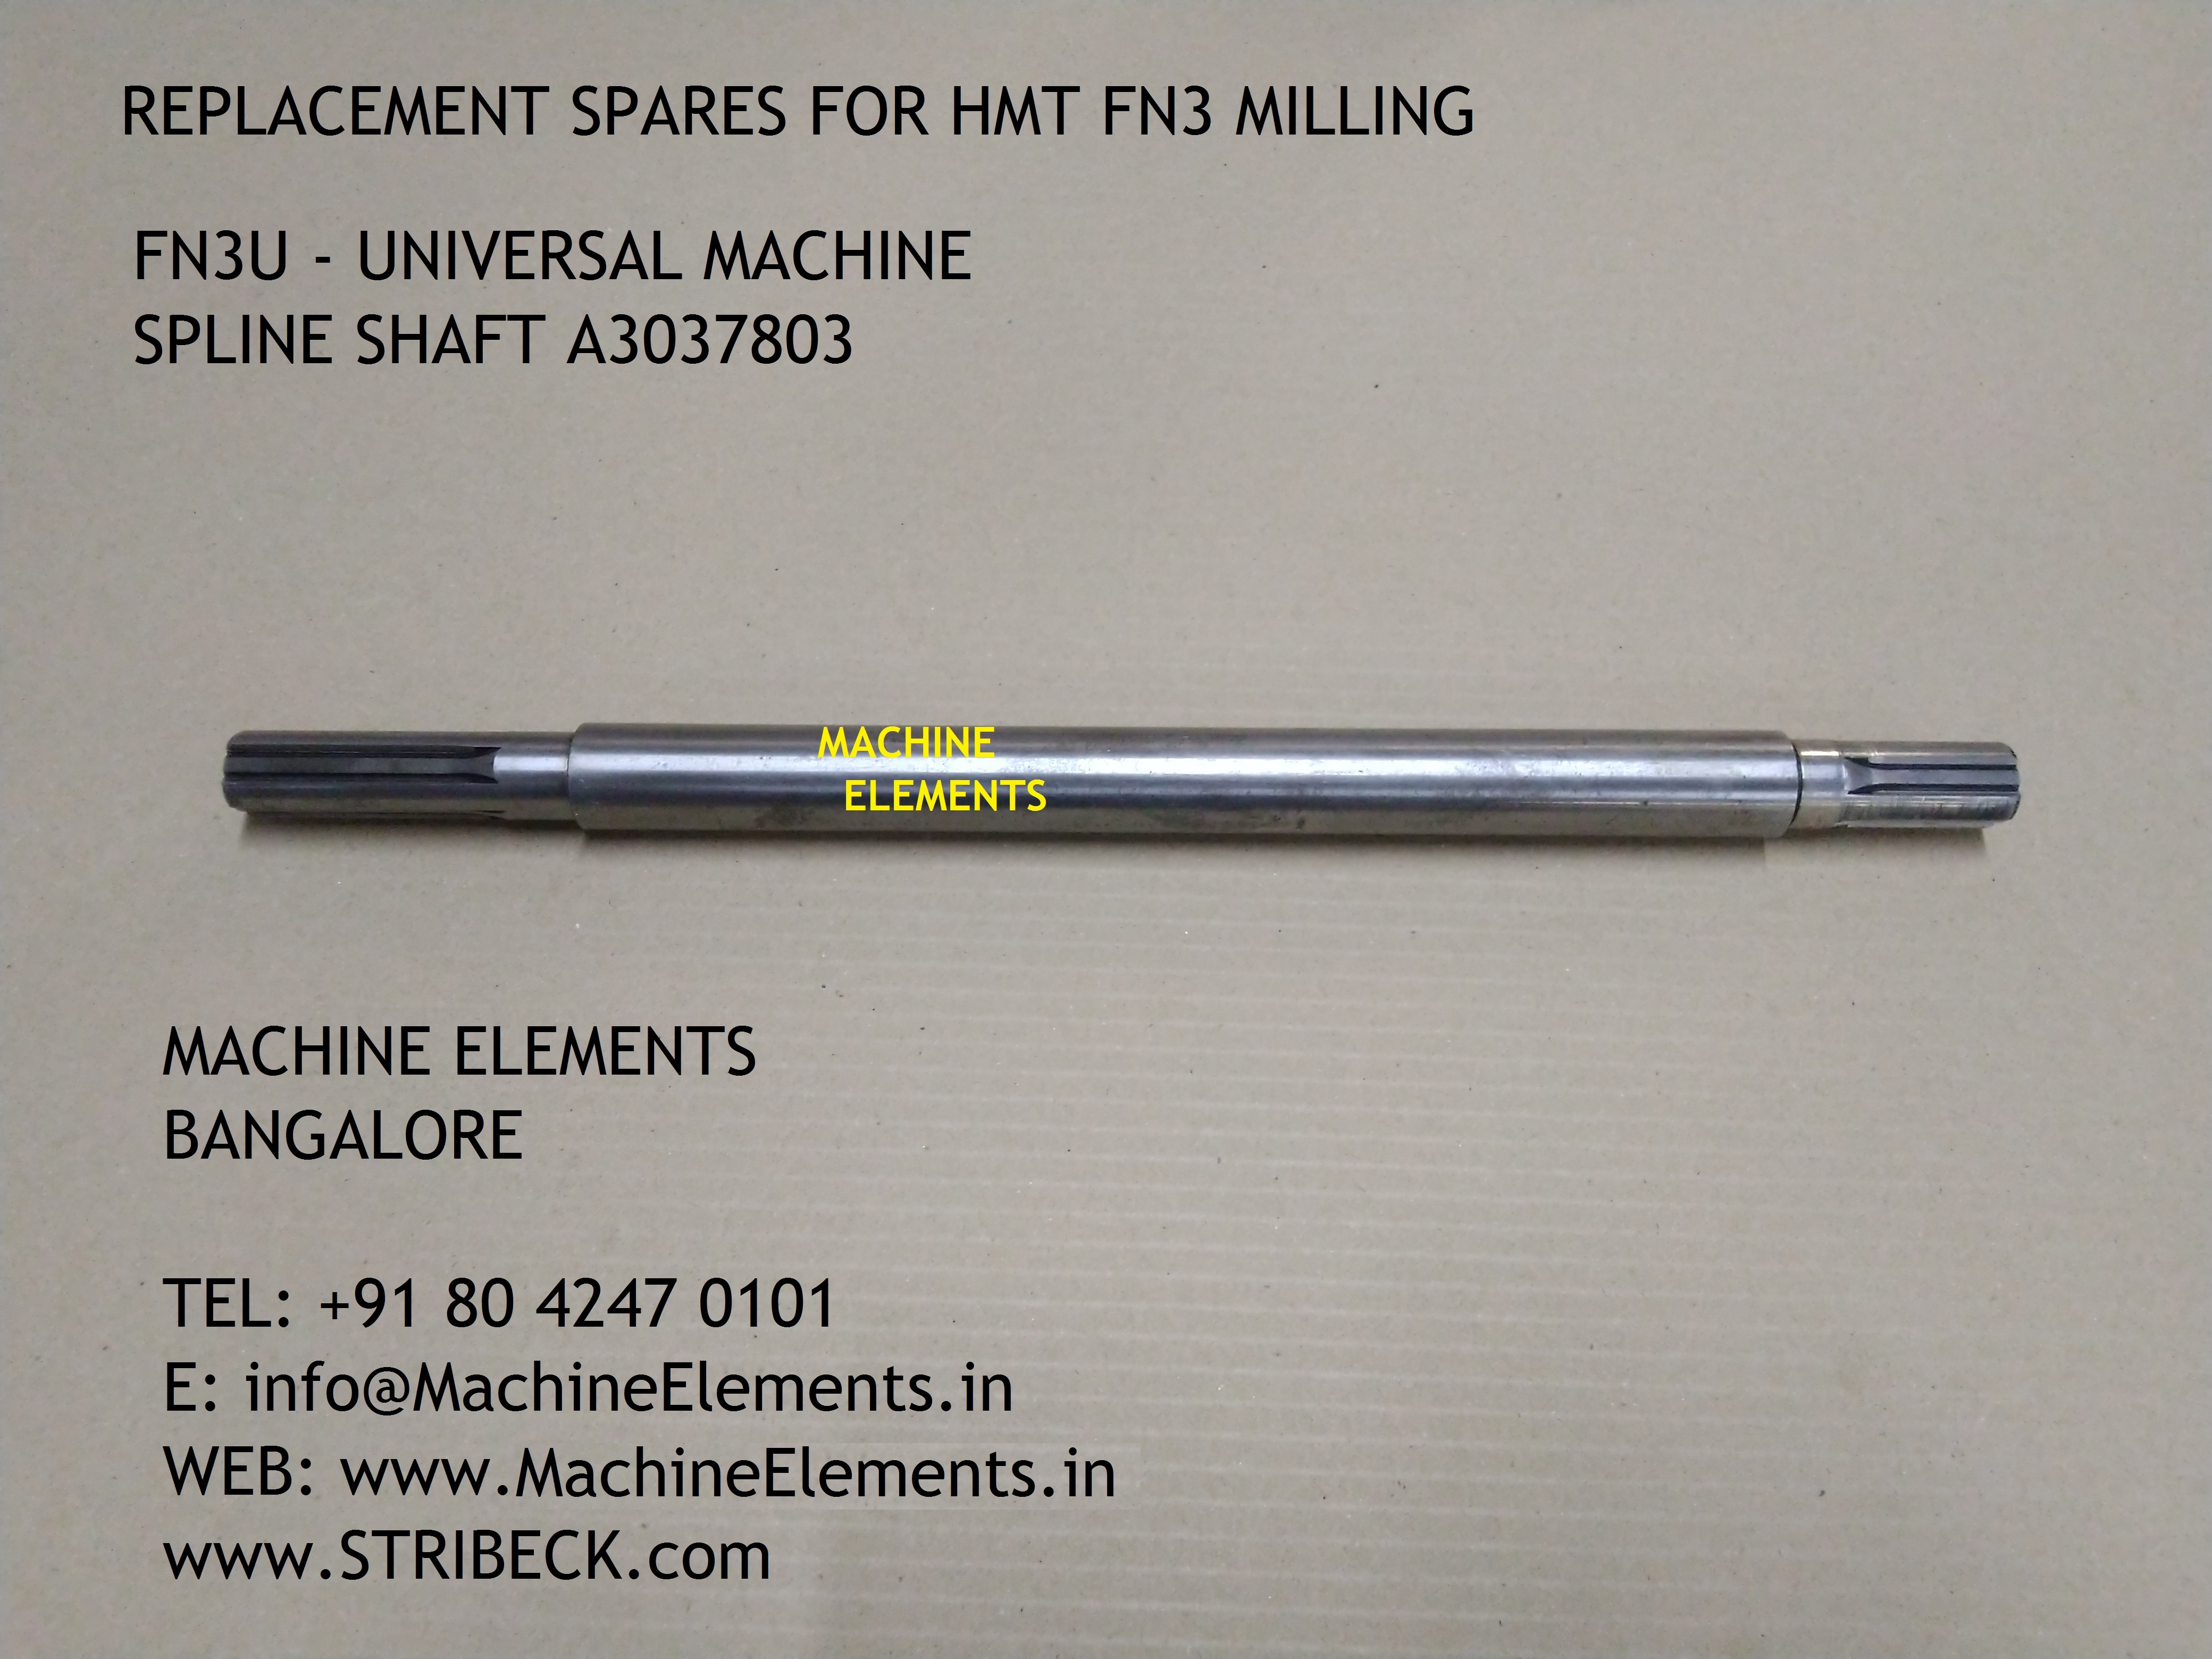 FN3U - SPLINE SHAFT A3037803